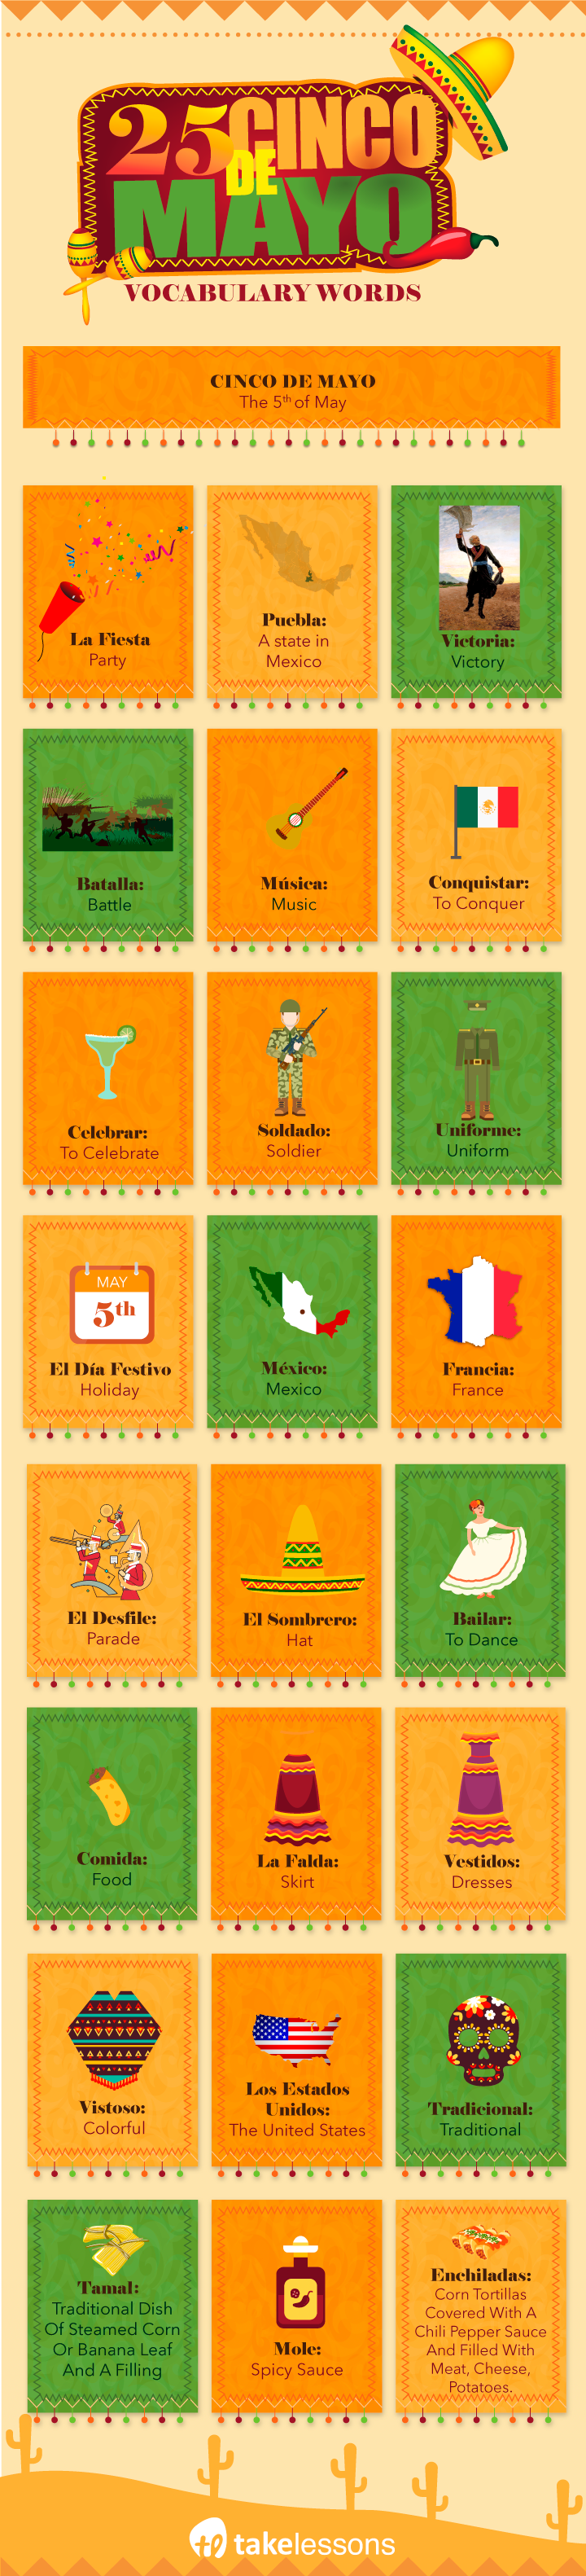 25-Cinco-de-Mayo-Vocabulary-Words.png